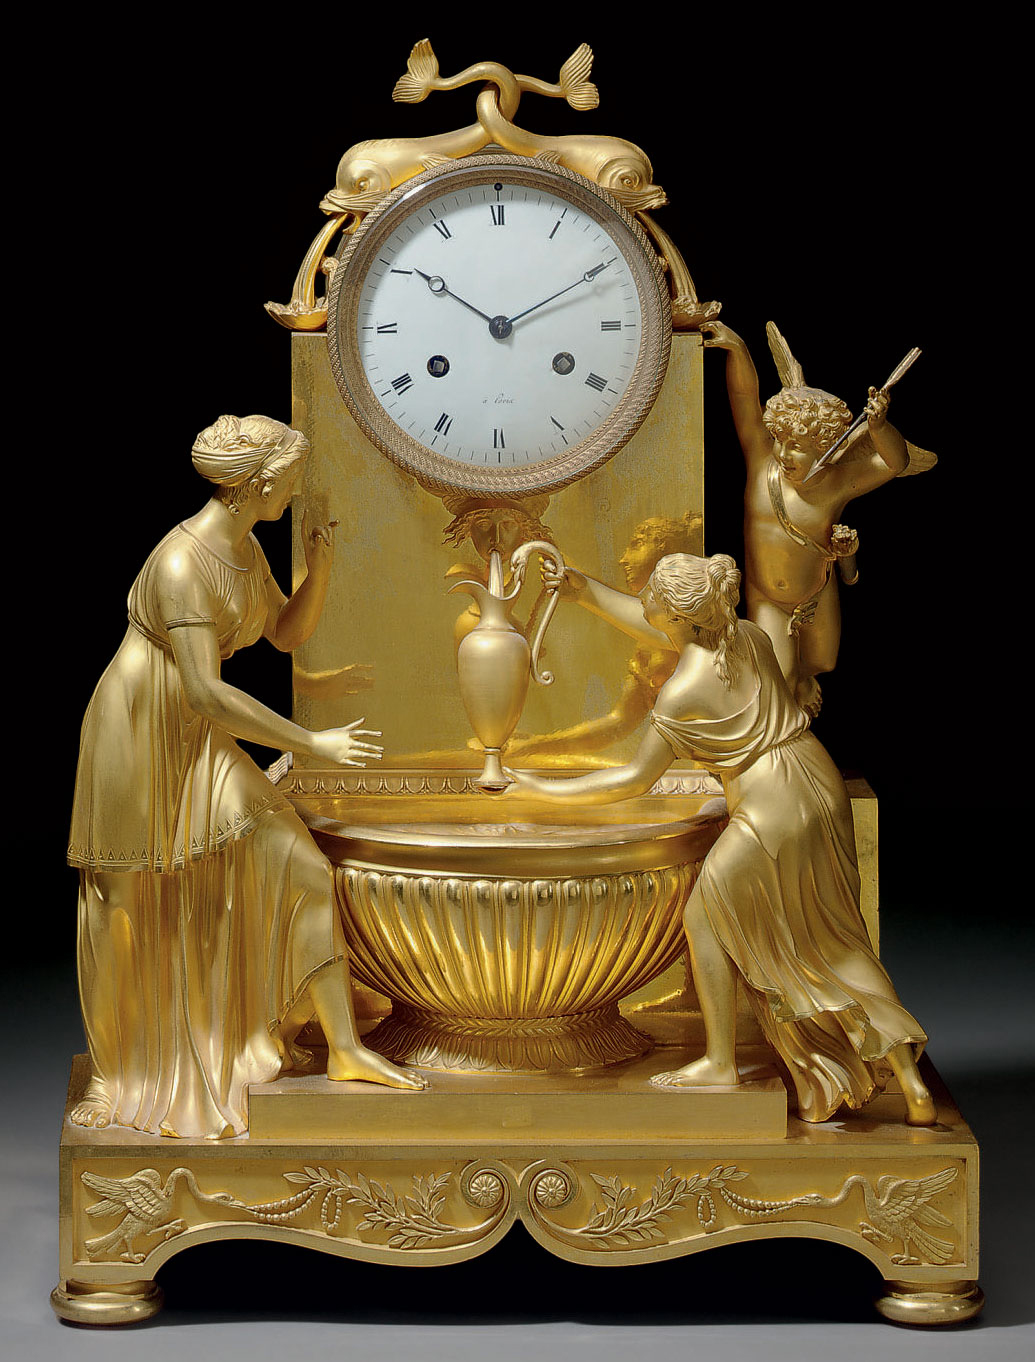 AN EMPIRE ORMOLU STRIKING MANTEL CLOCK: 'PENDULE A LA FONTAINE'